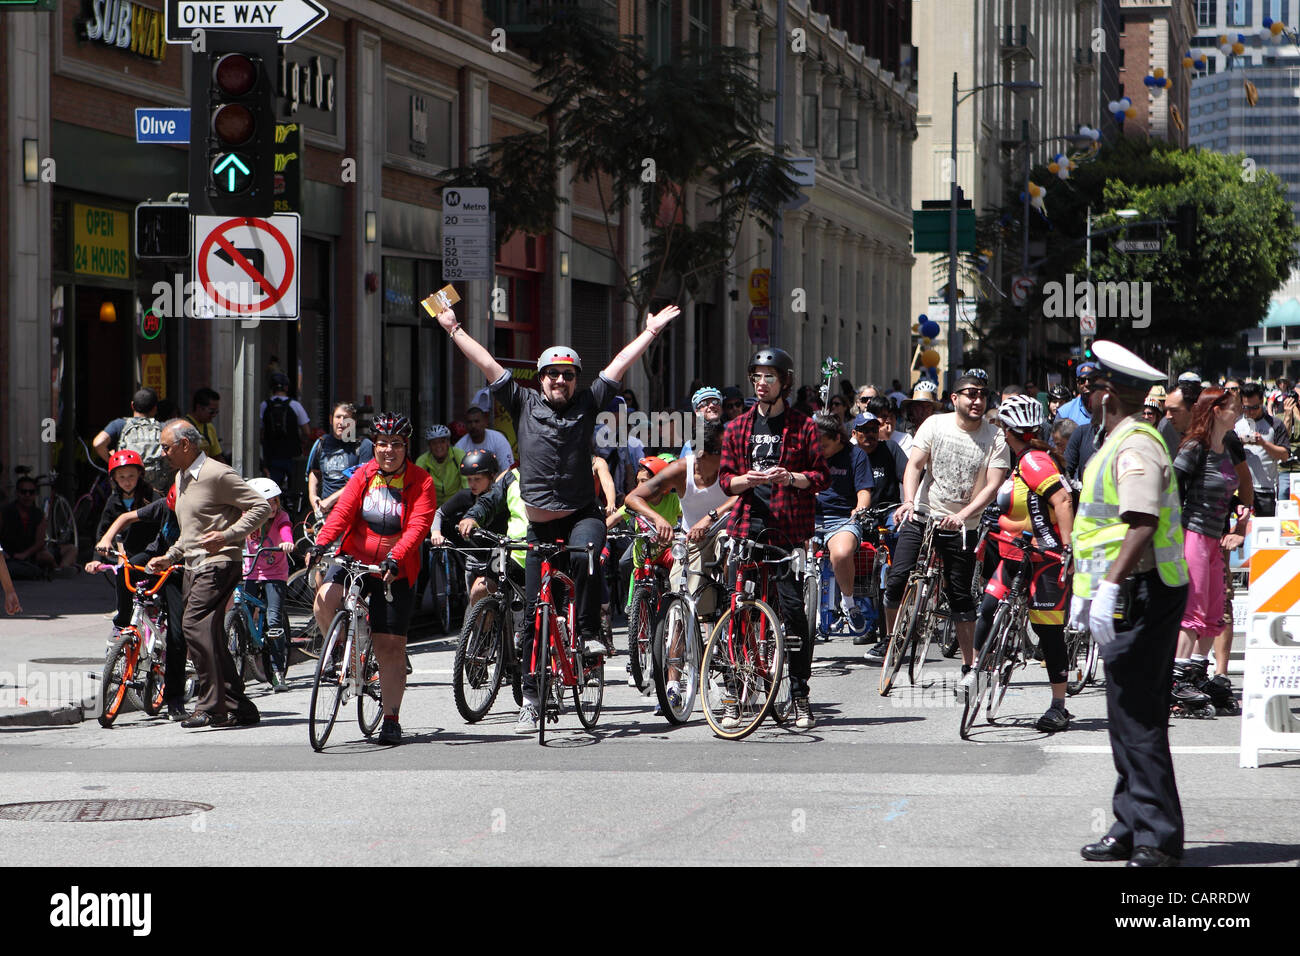 APRIL 15, 2012. Roads in Los Angeles, USA are temporarily closed to motorized traffic for CicLAvia. Pedestrians, Stock Photo